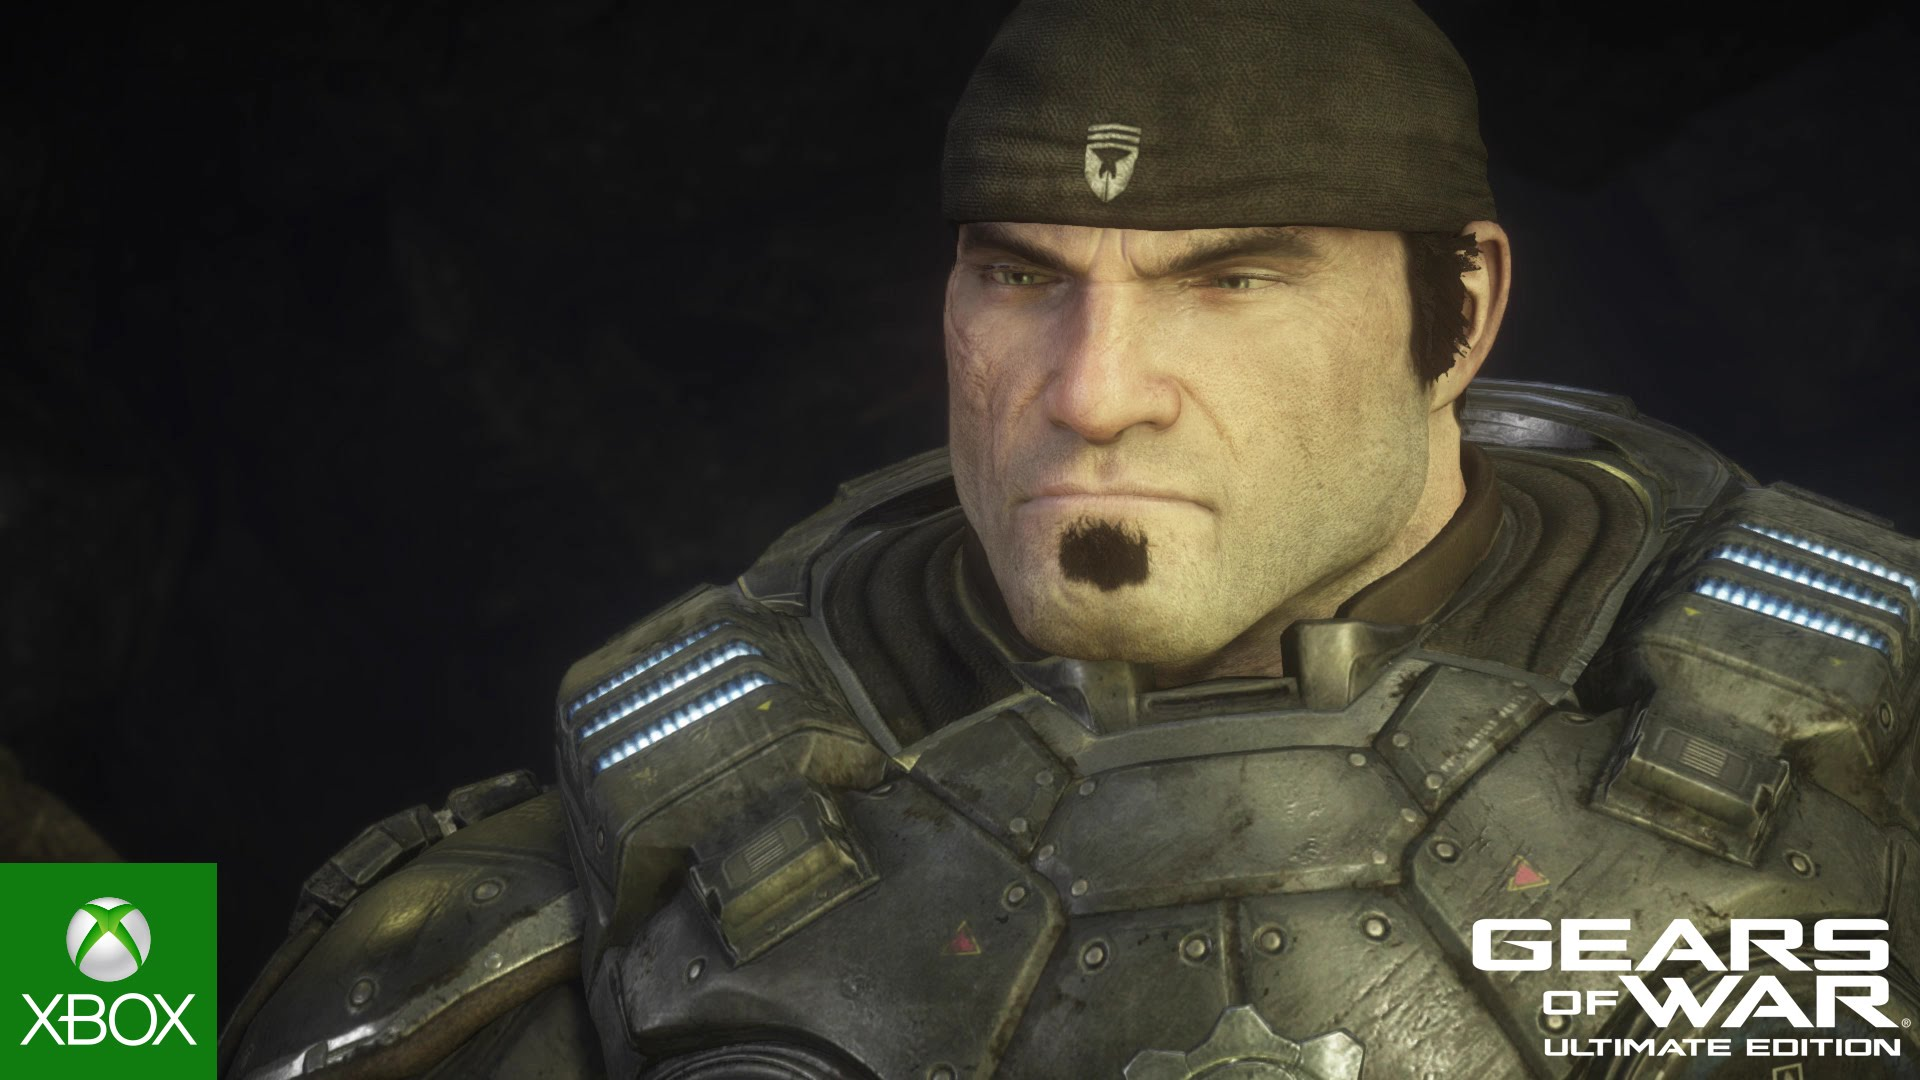 Video For Marcus Fenix Rises in Gears of War: Ultimate Edition